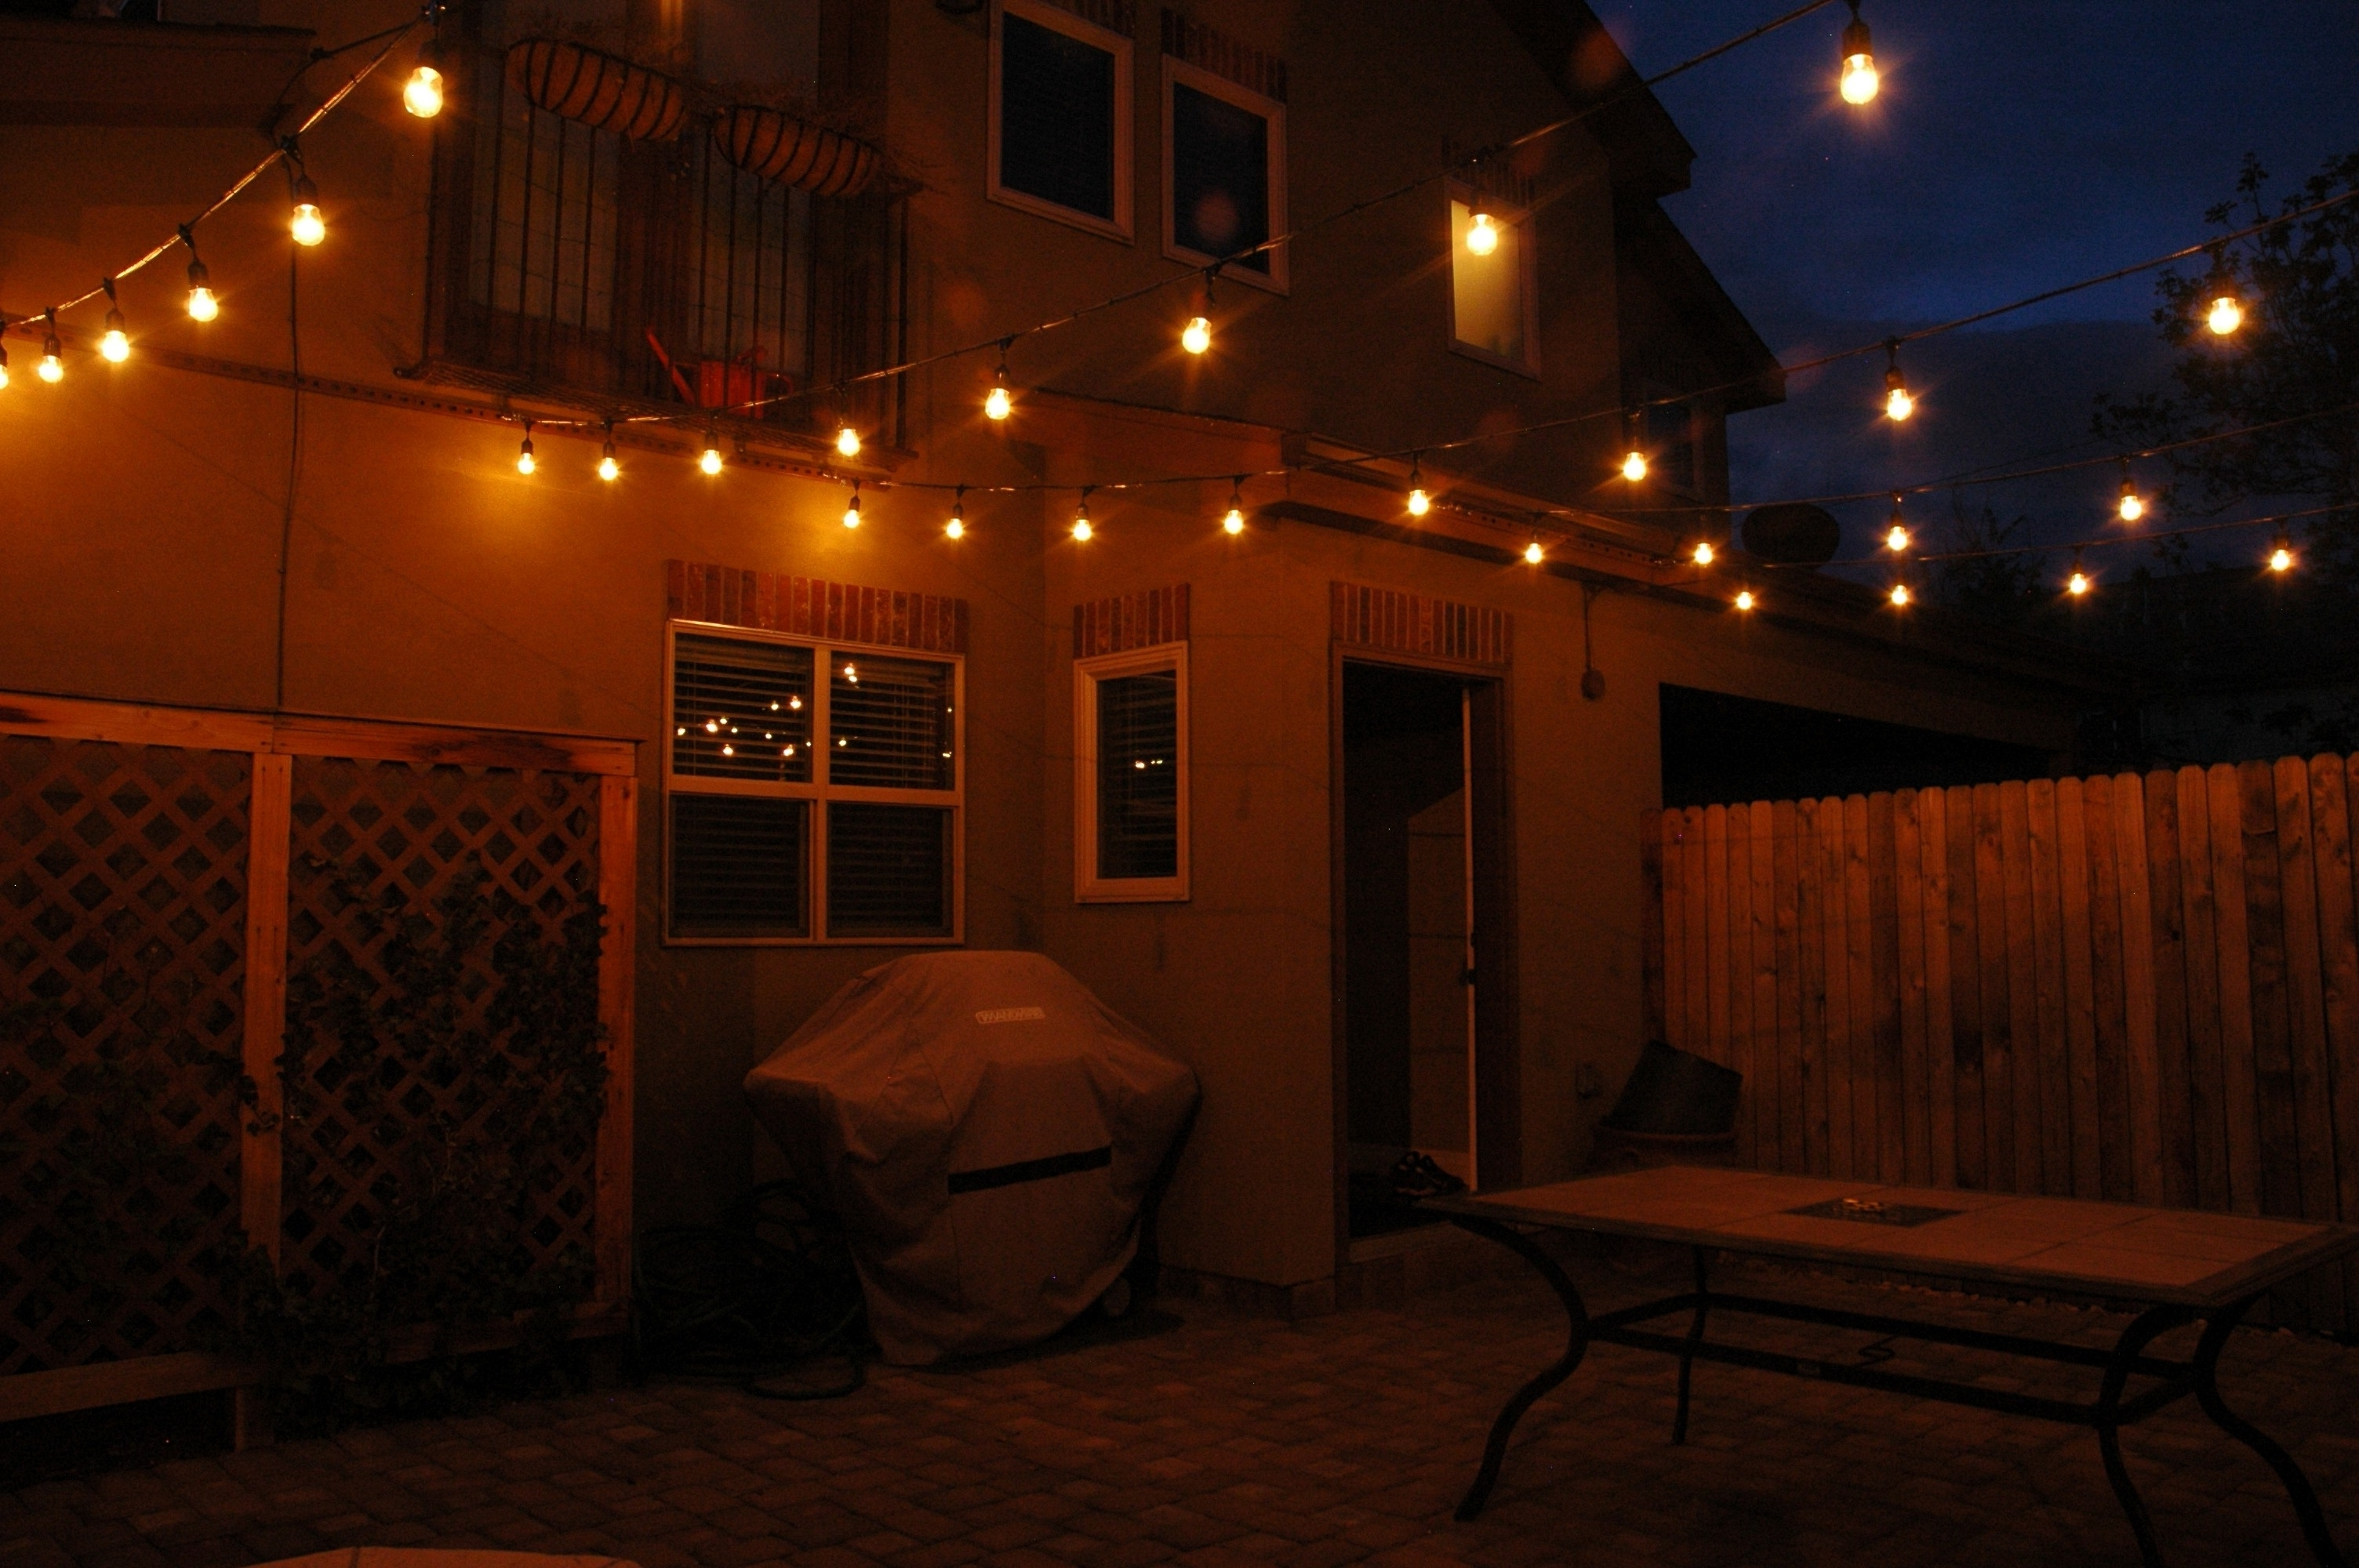 Hanging Outdoor String Lights At Home Depot Within Preferred Hanging Outdoor String Lights Home Depot (View 9 of 20)